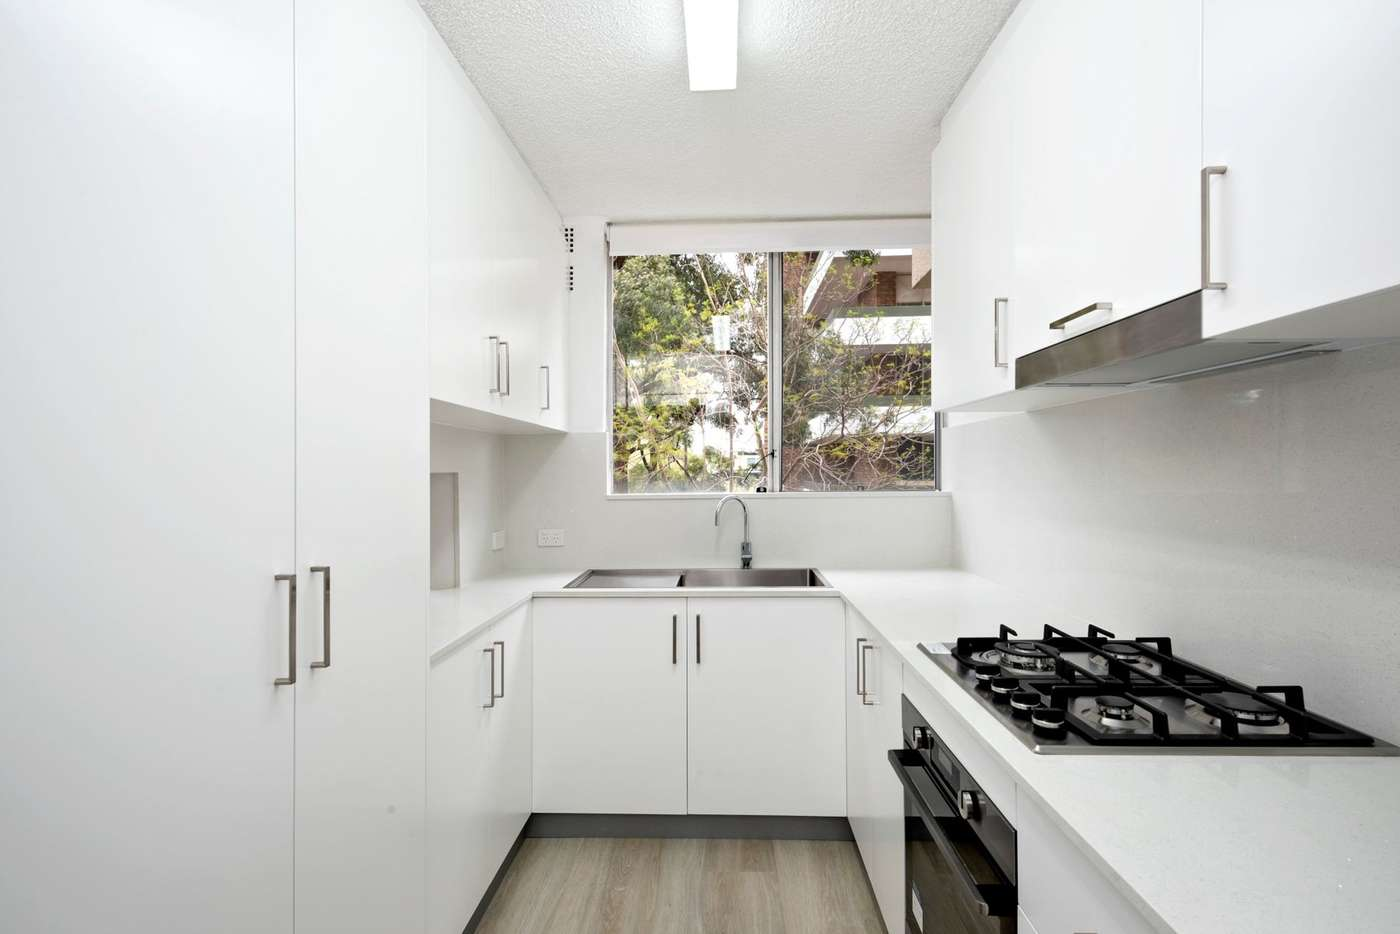 Main view of Homely apartment listing, 10/88 Albert Avenue, Chatswood NSW 2067